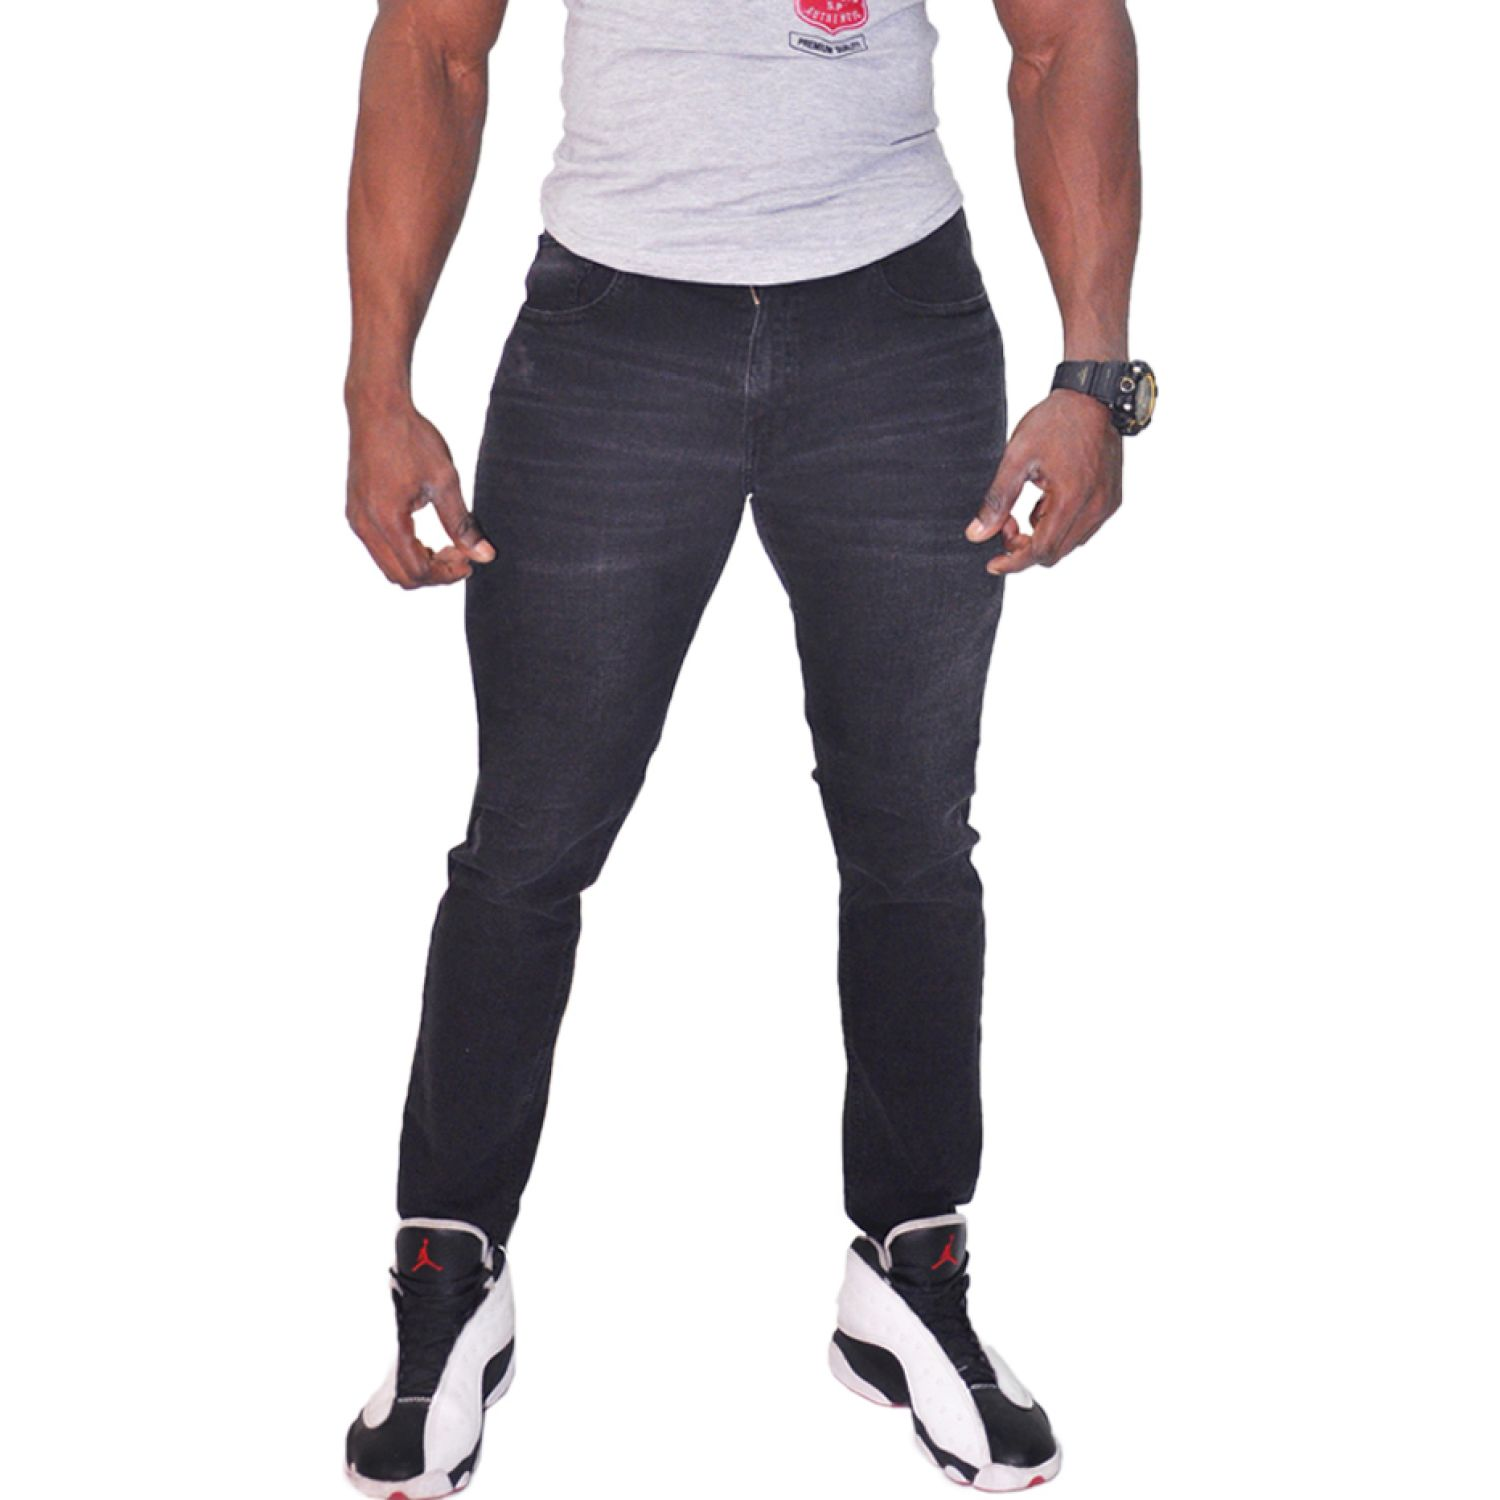 COTTONS JEANS Nahum Negro Casual